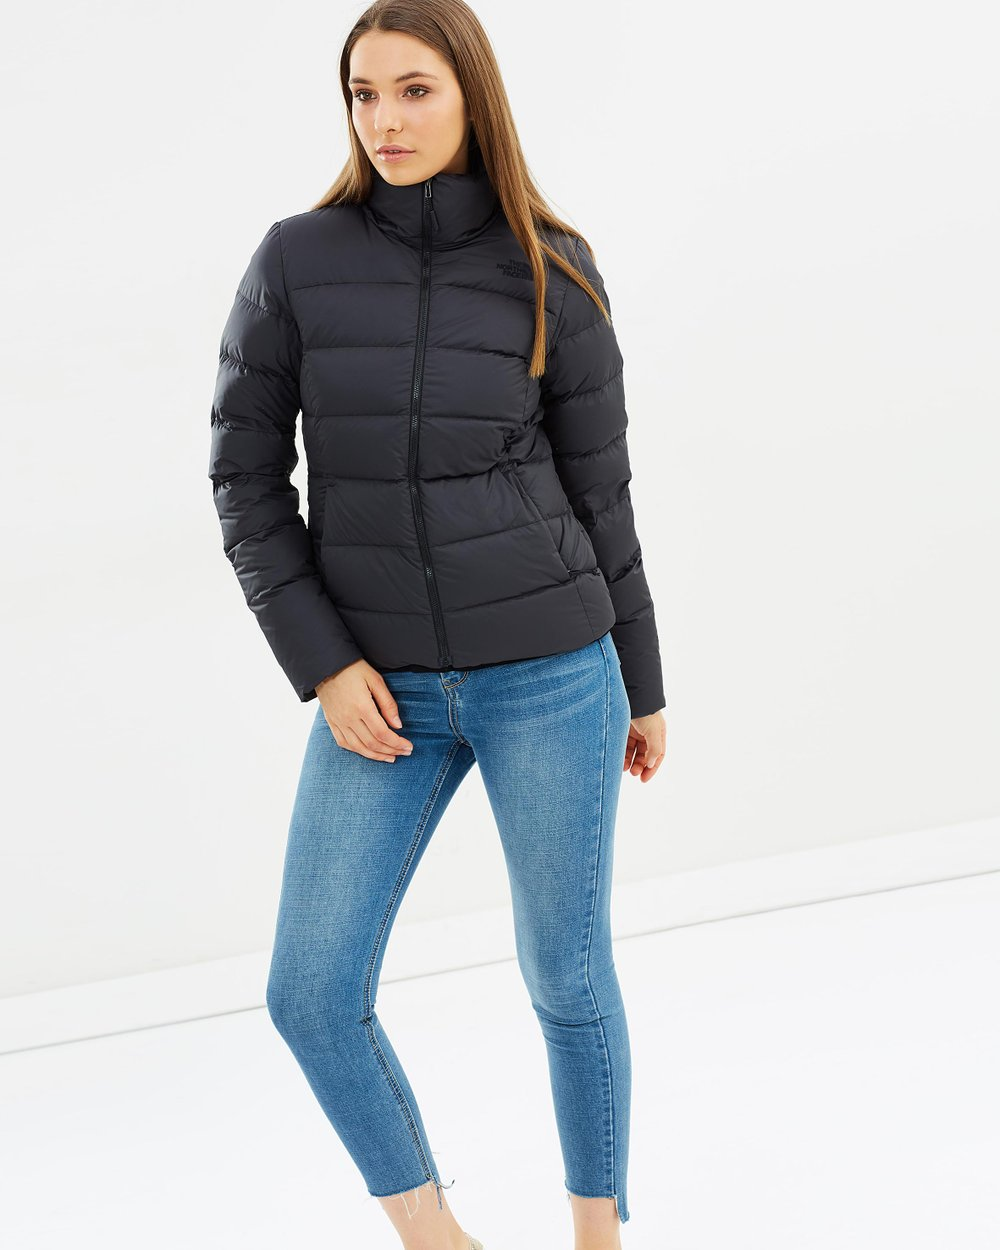 Women s Nuptse Jacket by The North Face Online  4ef4d7ada